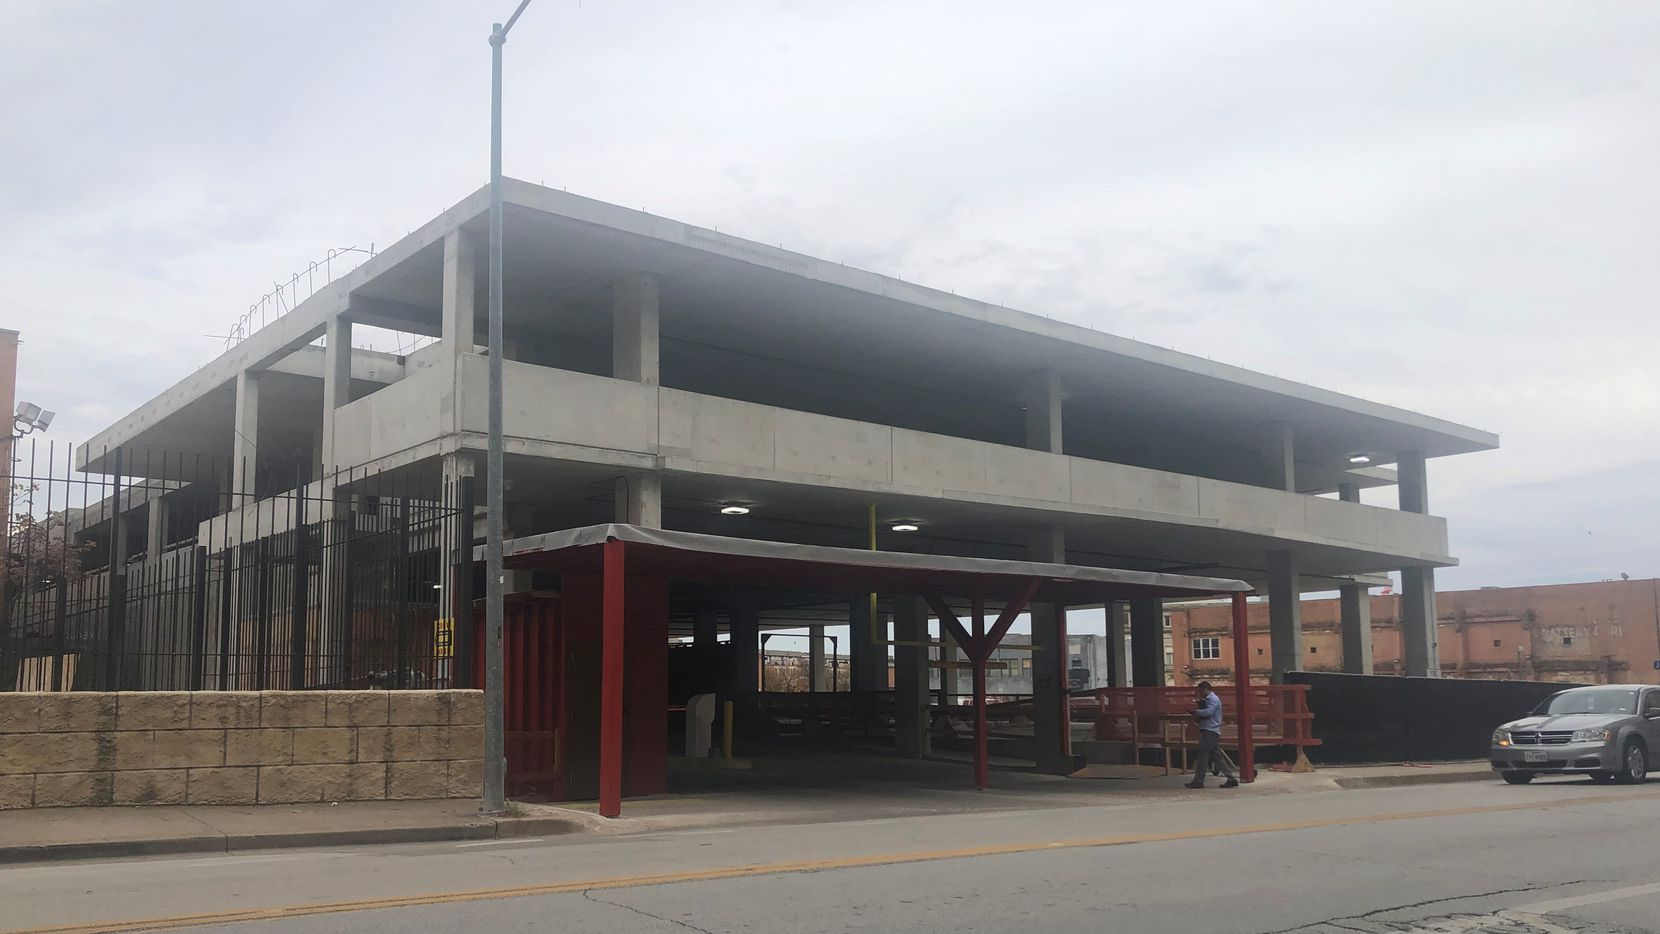 The parking garage at Harwood and Commerce streets in downtown Dallas where a woman was attacked in the early morning on Sept. 21, 2019.